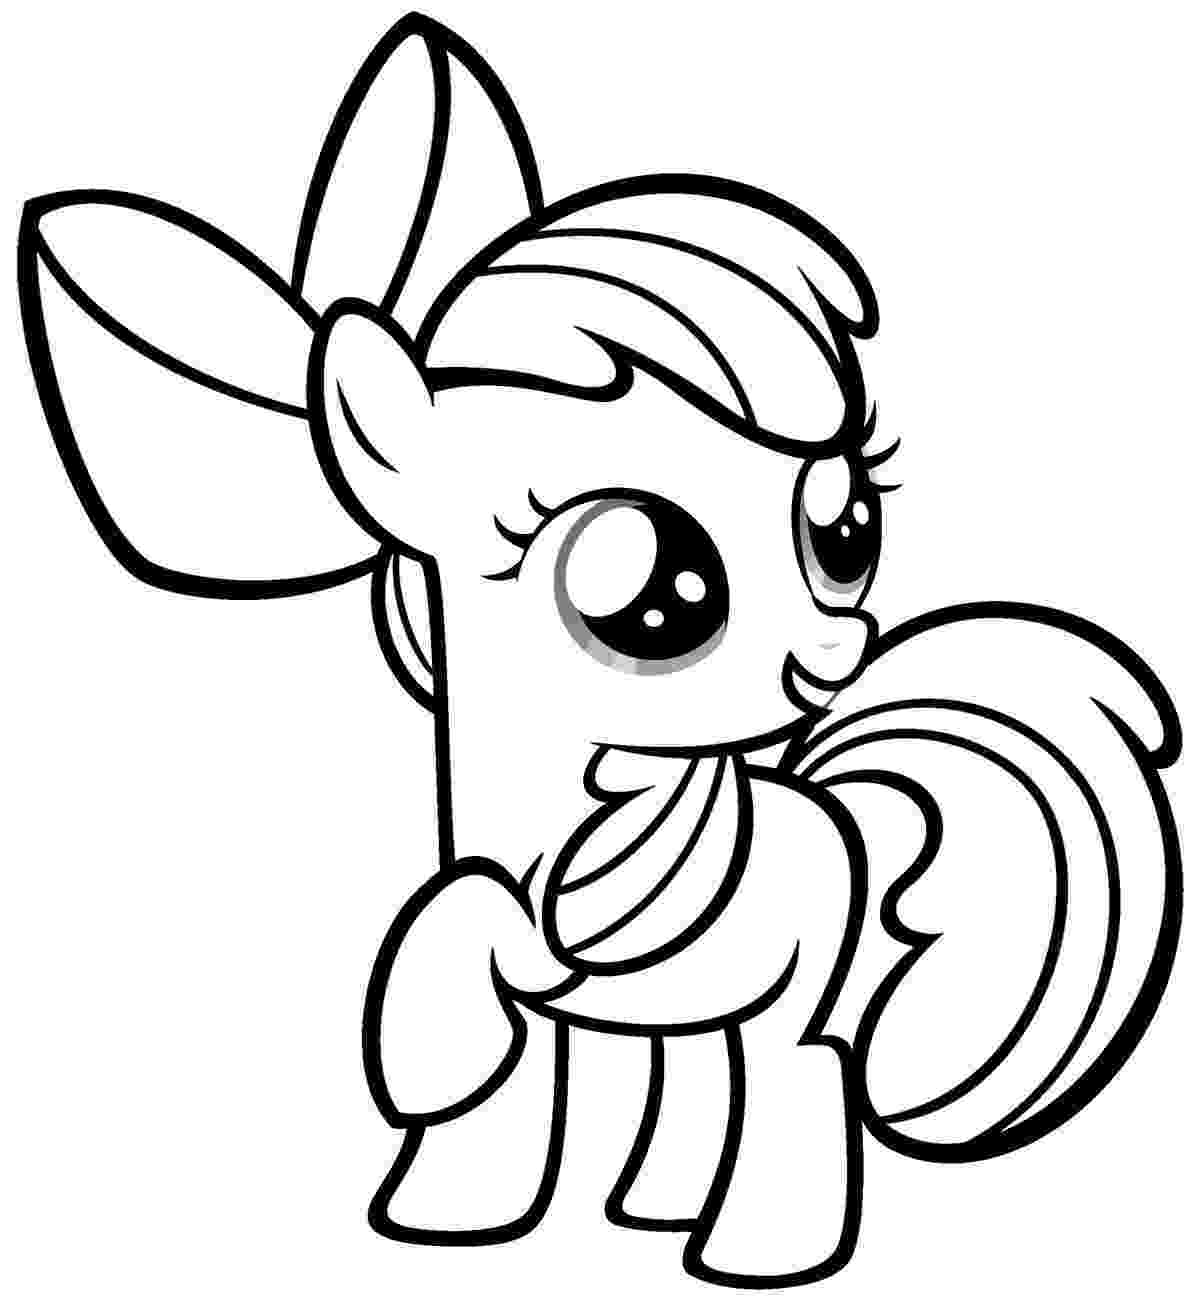 my little pony picture to color free printable my little pony coloring pages for kids my color pony picture my little to